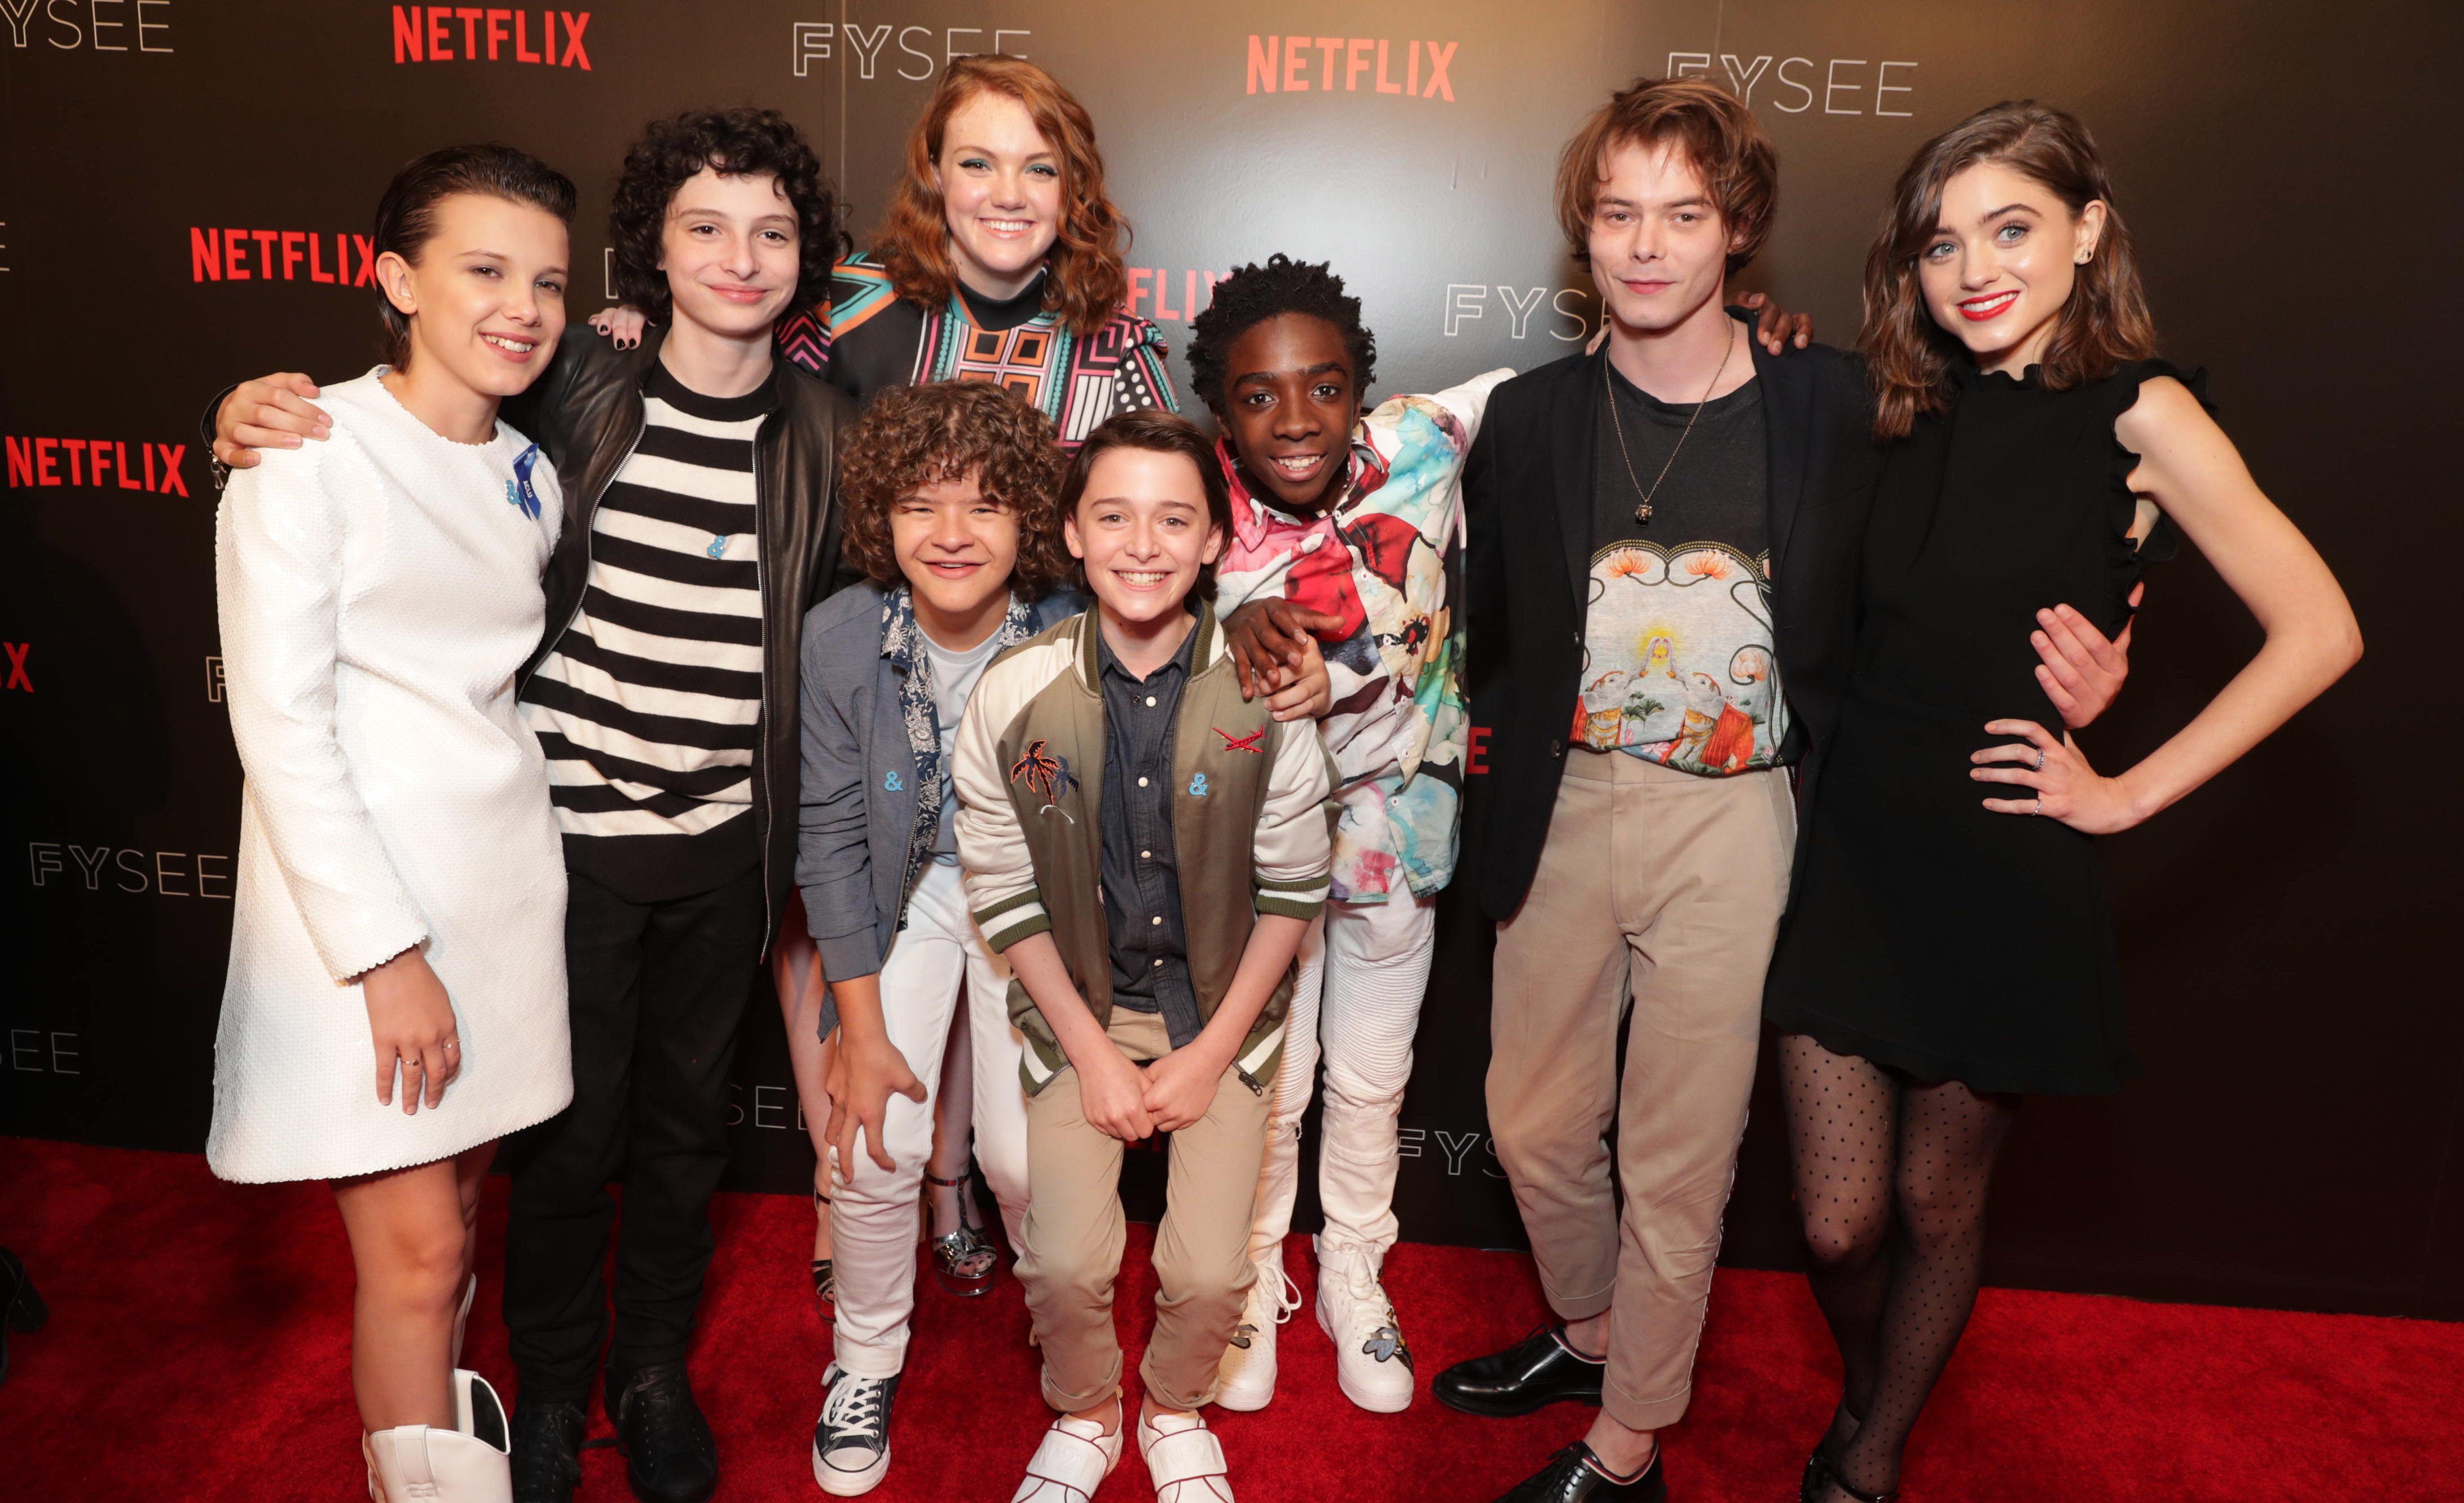 Millie Bobby Brown, Finn Wolfhard, Shannon Purser, Gaten Matarazzo, Noah Schnapp, Caleb McLaughlin, Charlie Heaton and Natalia Dyer seen at Netflix FYSee Kickoff Event, an experiential exhibition space, bringing the best of Netflix series to life for industry and guild members leading into Emmy voting season, on Sunday, May 7, 2017, in Beverly Hills, Calif. (Photo by Eric Charbonneau/Invision for Netflix/AP Images)